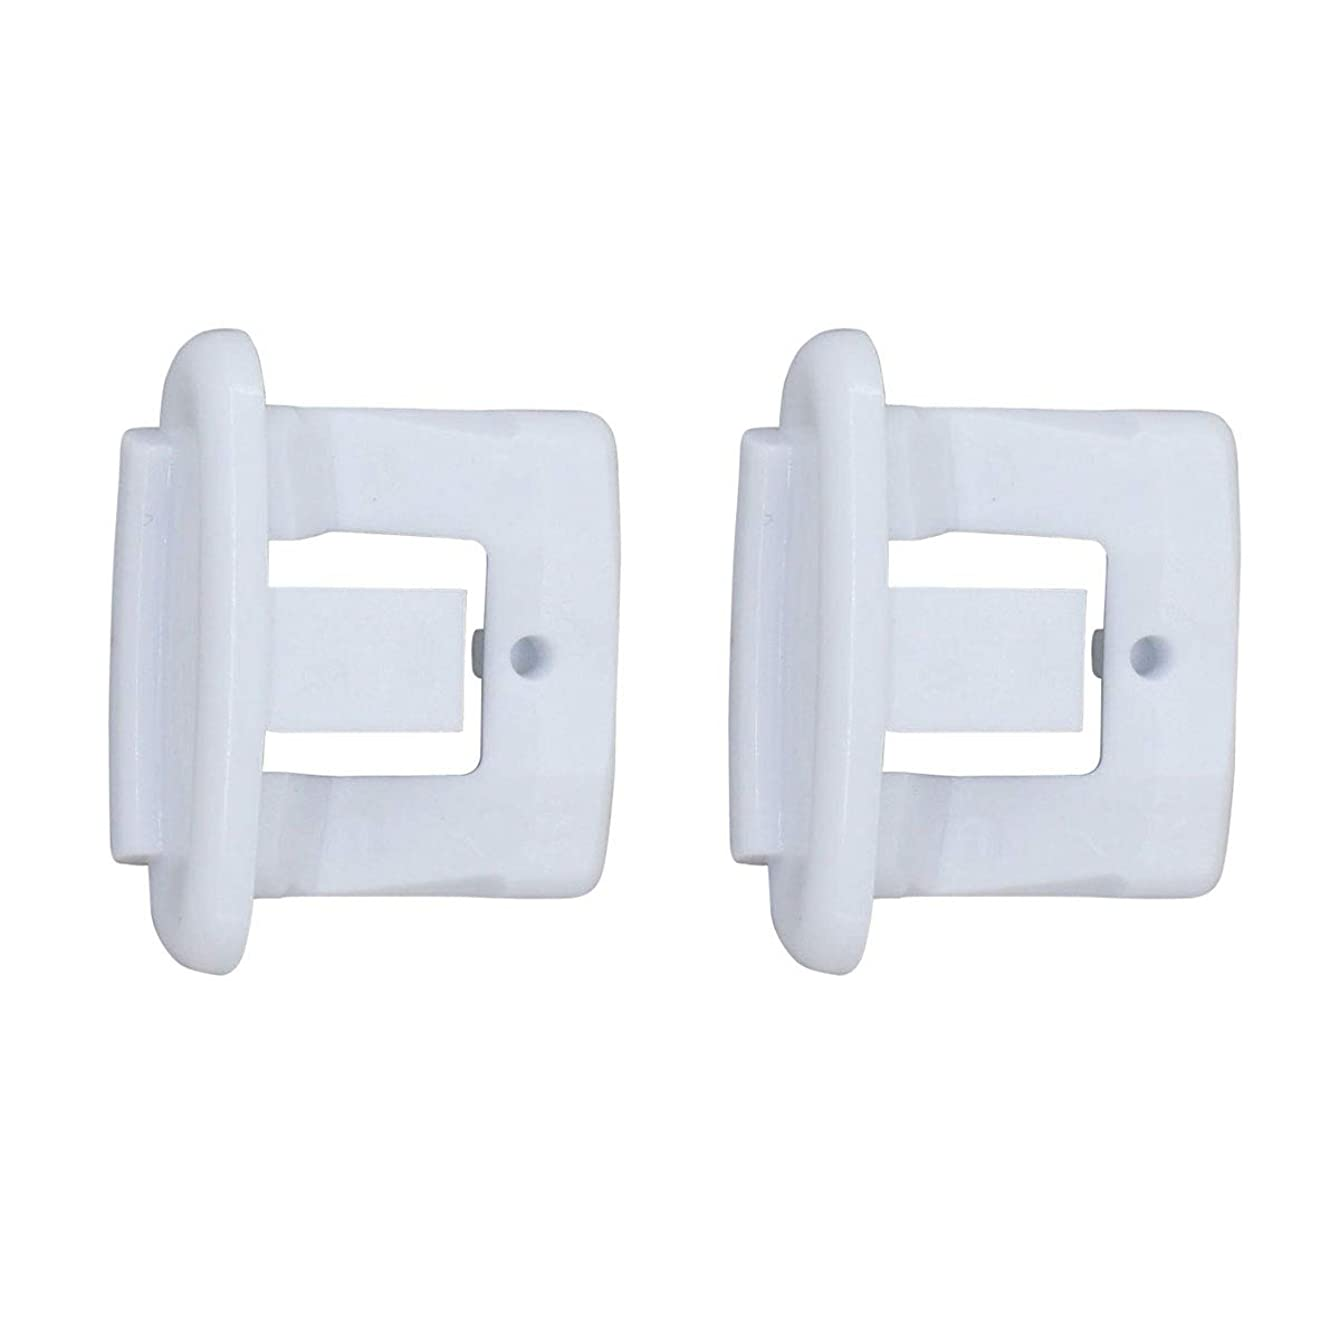 ApplianPar 2 Pack WD12X10304 Dishwasher Upper Rack Rail Slide End Cap for General Electric/Kenmore/Hotpoint WD12X344 AP4484666 PS2370502